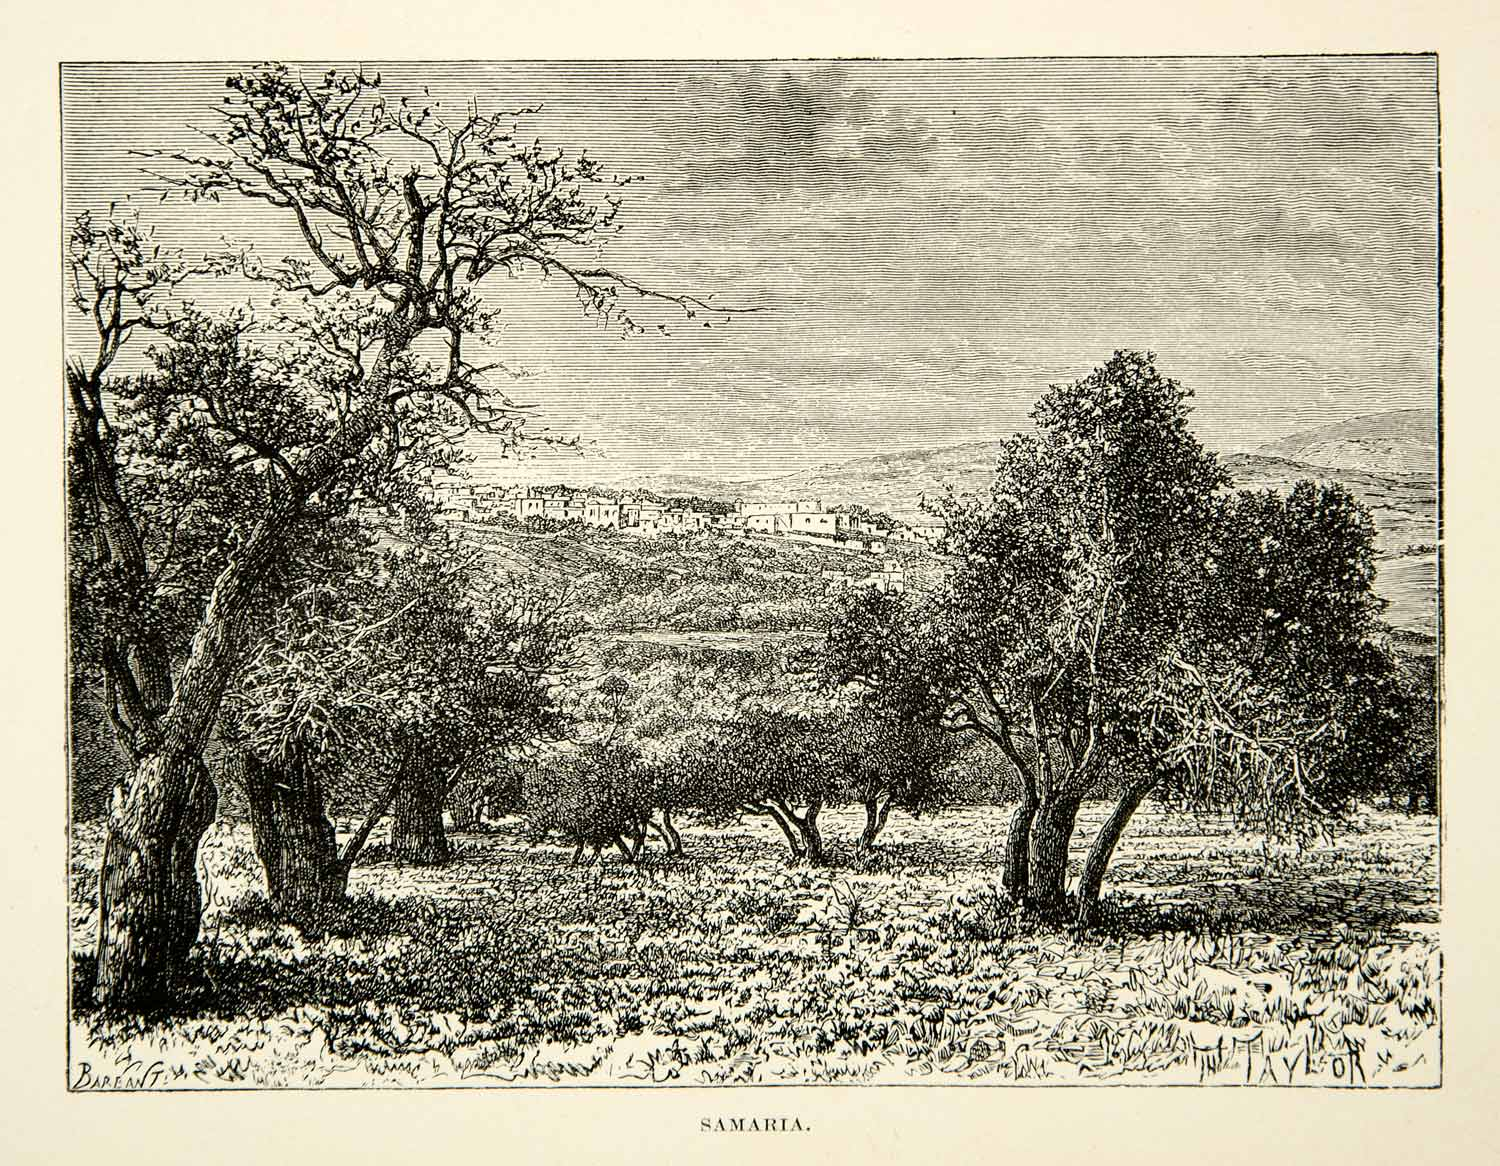 1891 Wood Engraving Samaria Landscape Biblical Trees Middle East Field XGFD1